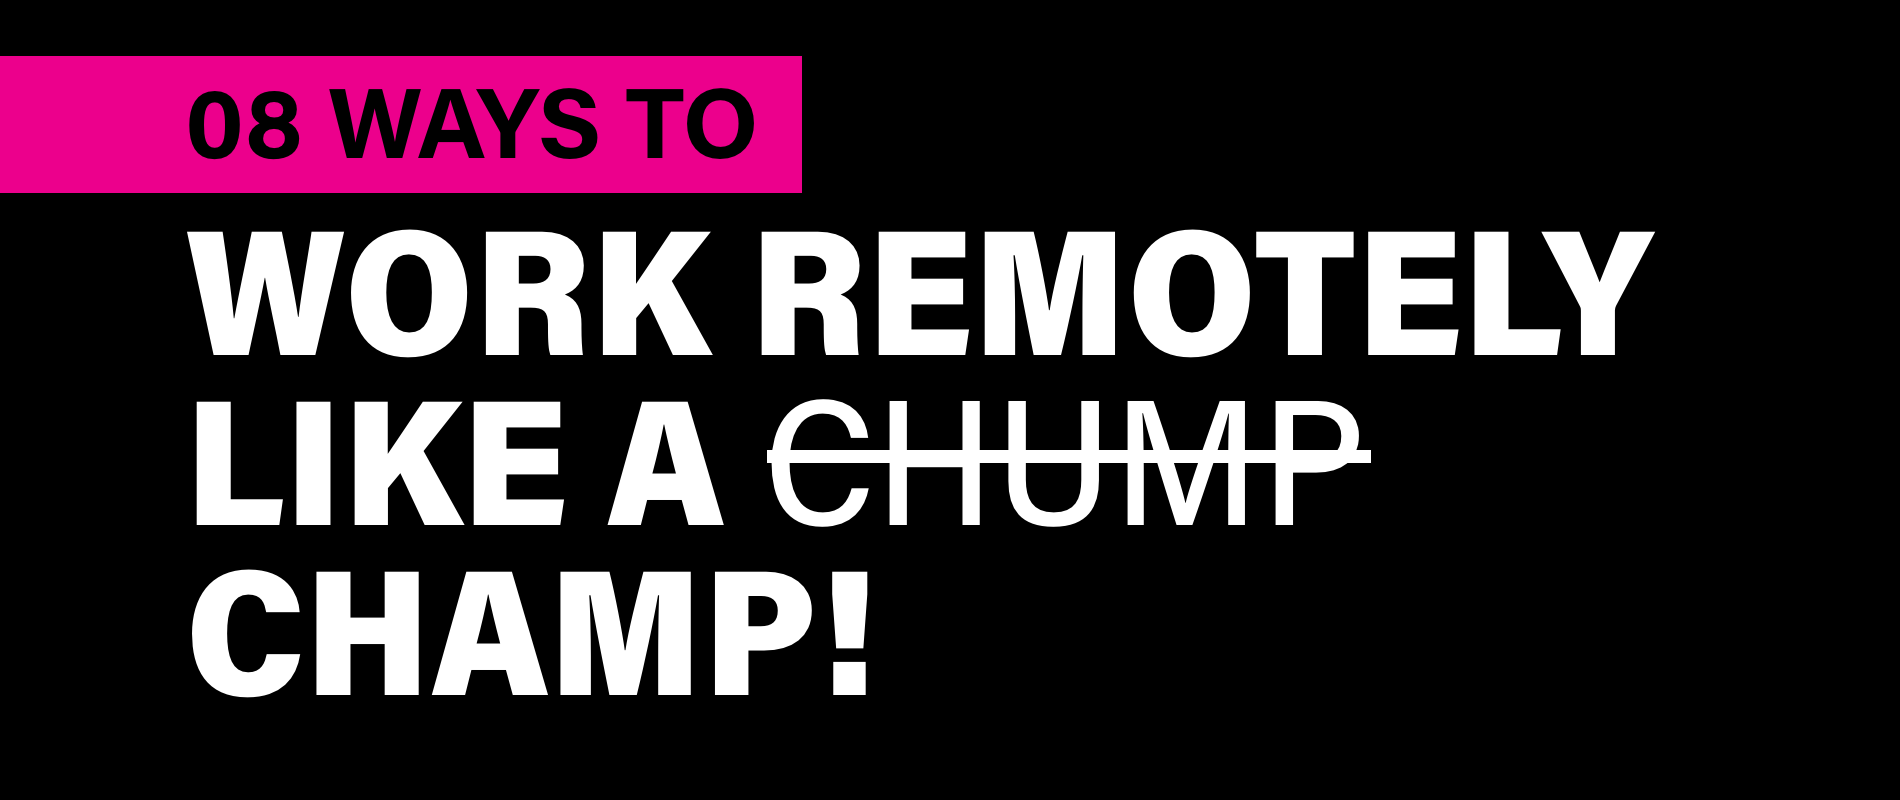 8 Ways to Work Remotely Like a Champ!